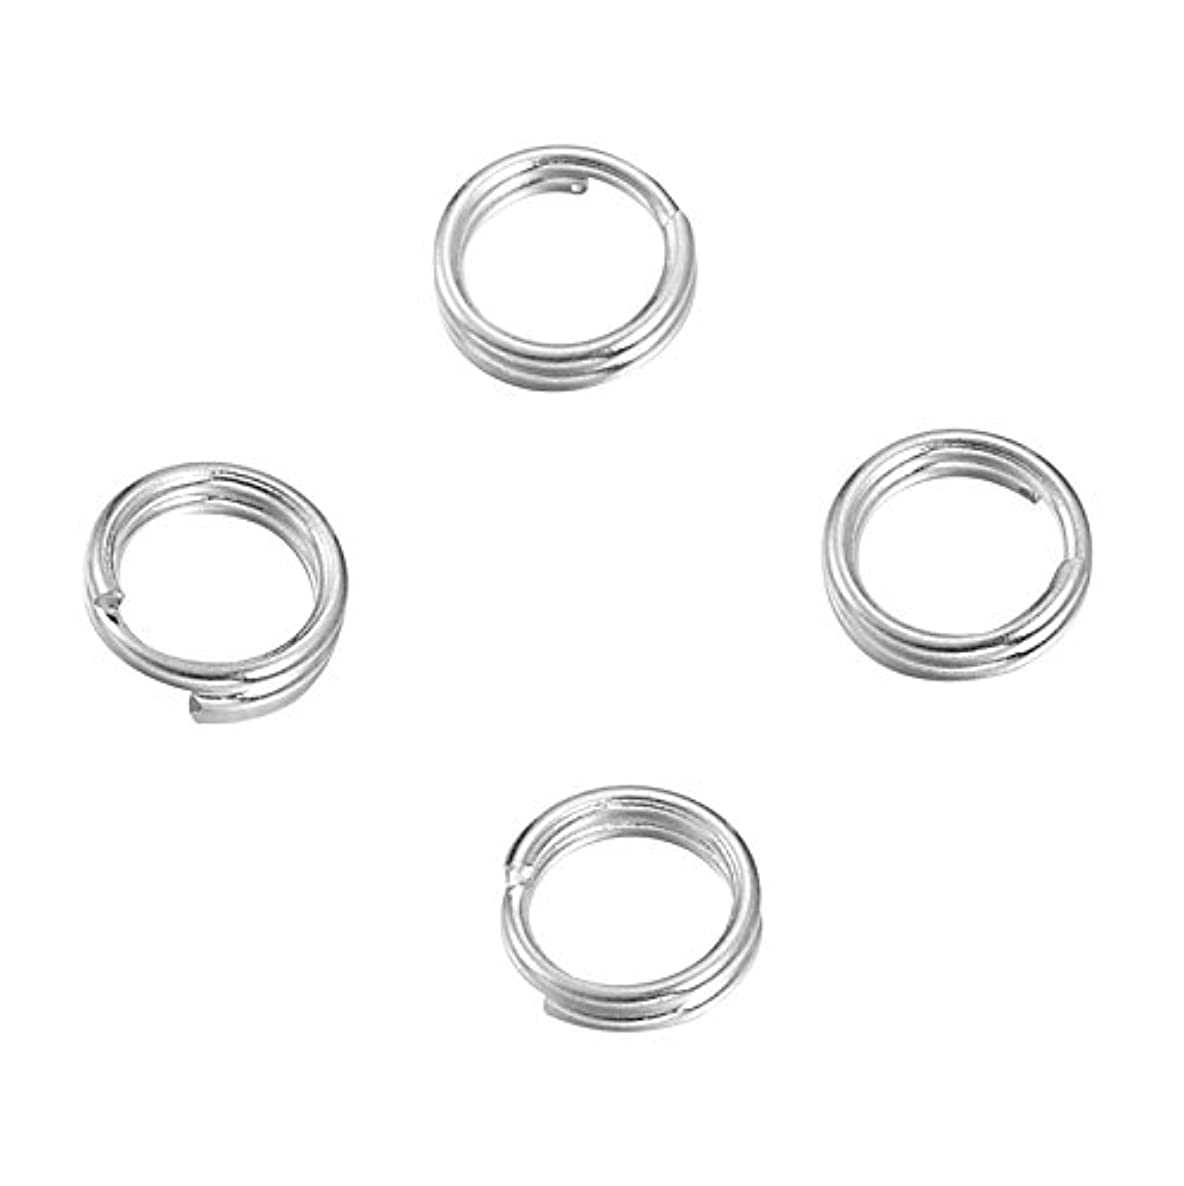 VALYRIA Sterling Silver Split Jump Ring Connector Charm Jewelry Findings,20pcs 5.0mmx0.6mm